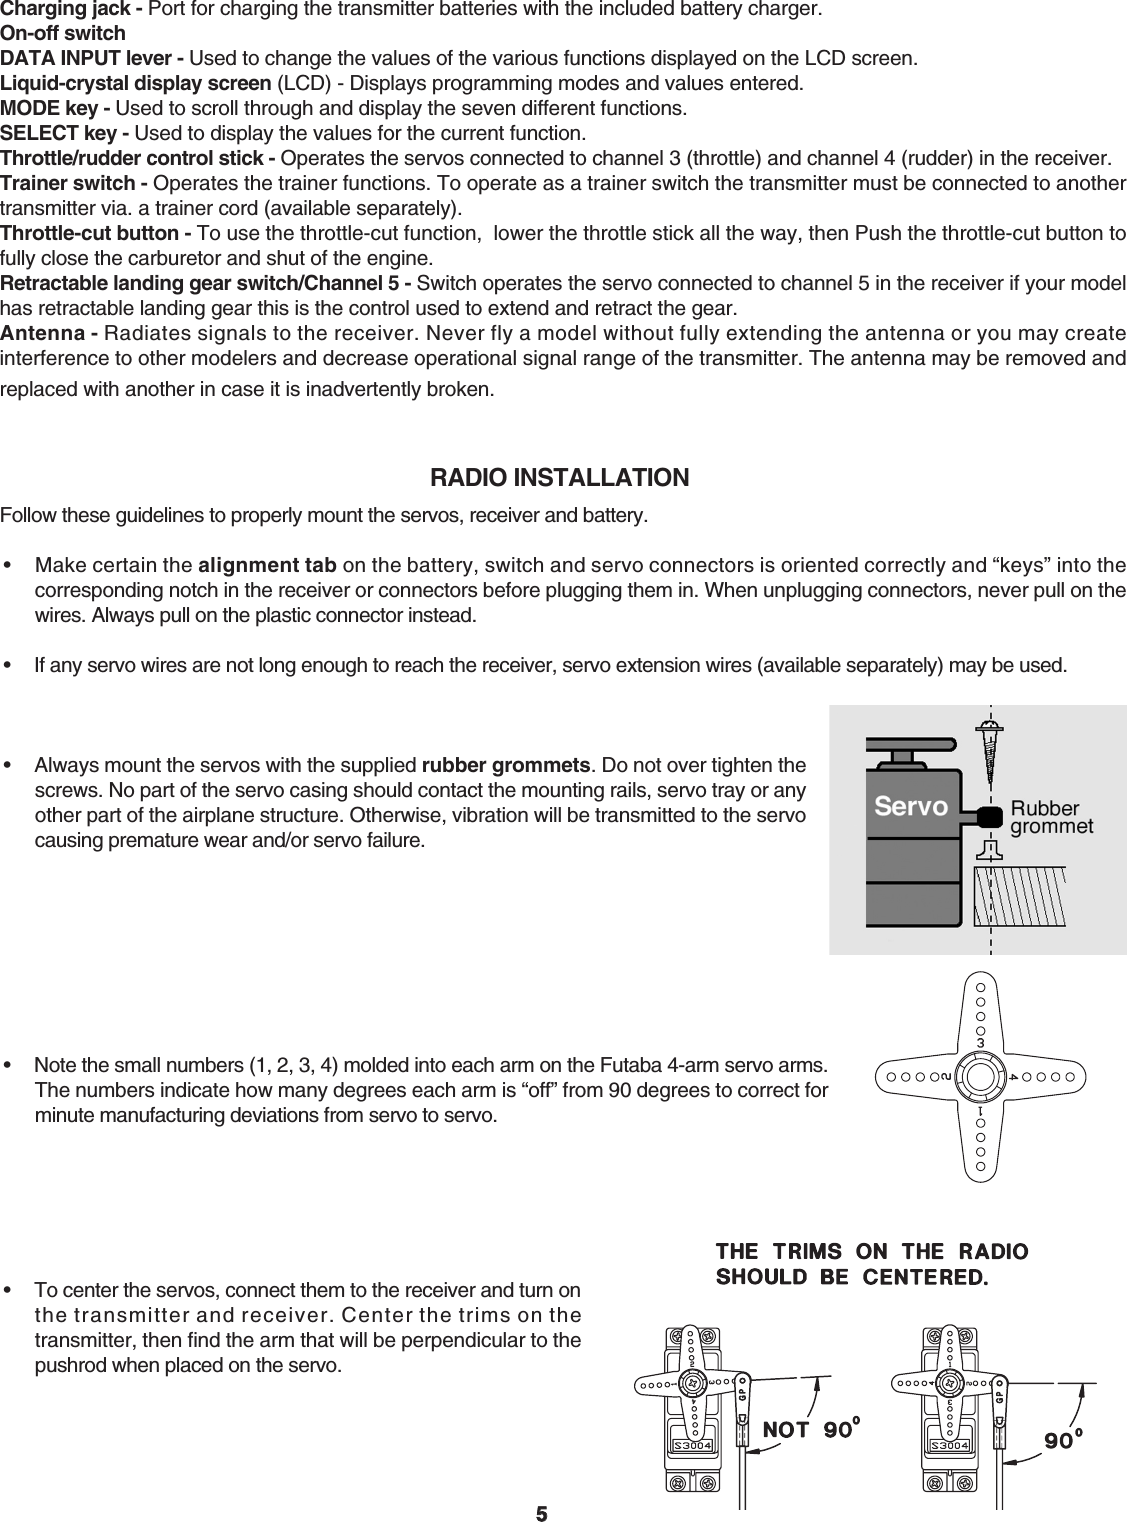 The Structure And Functions Of Congress Part 1 Manual Guide